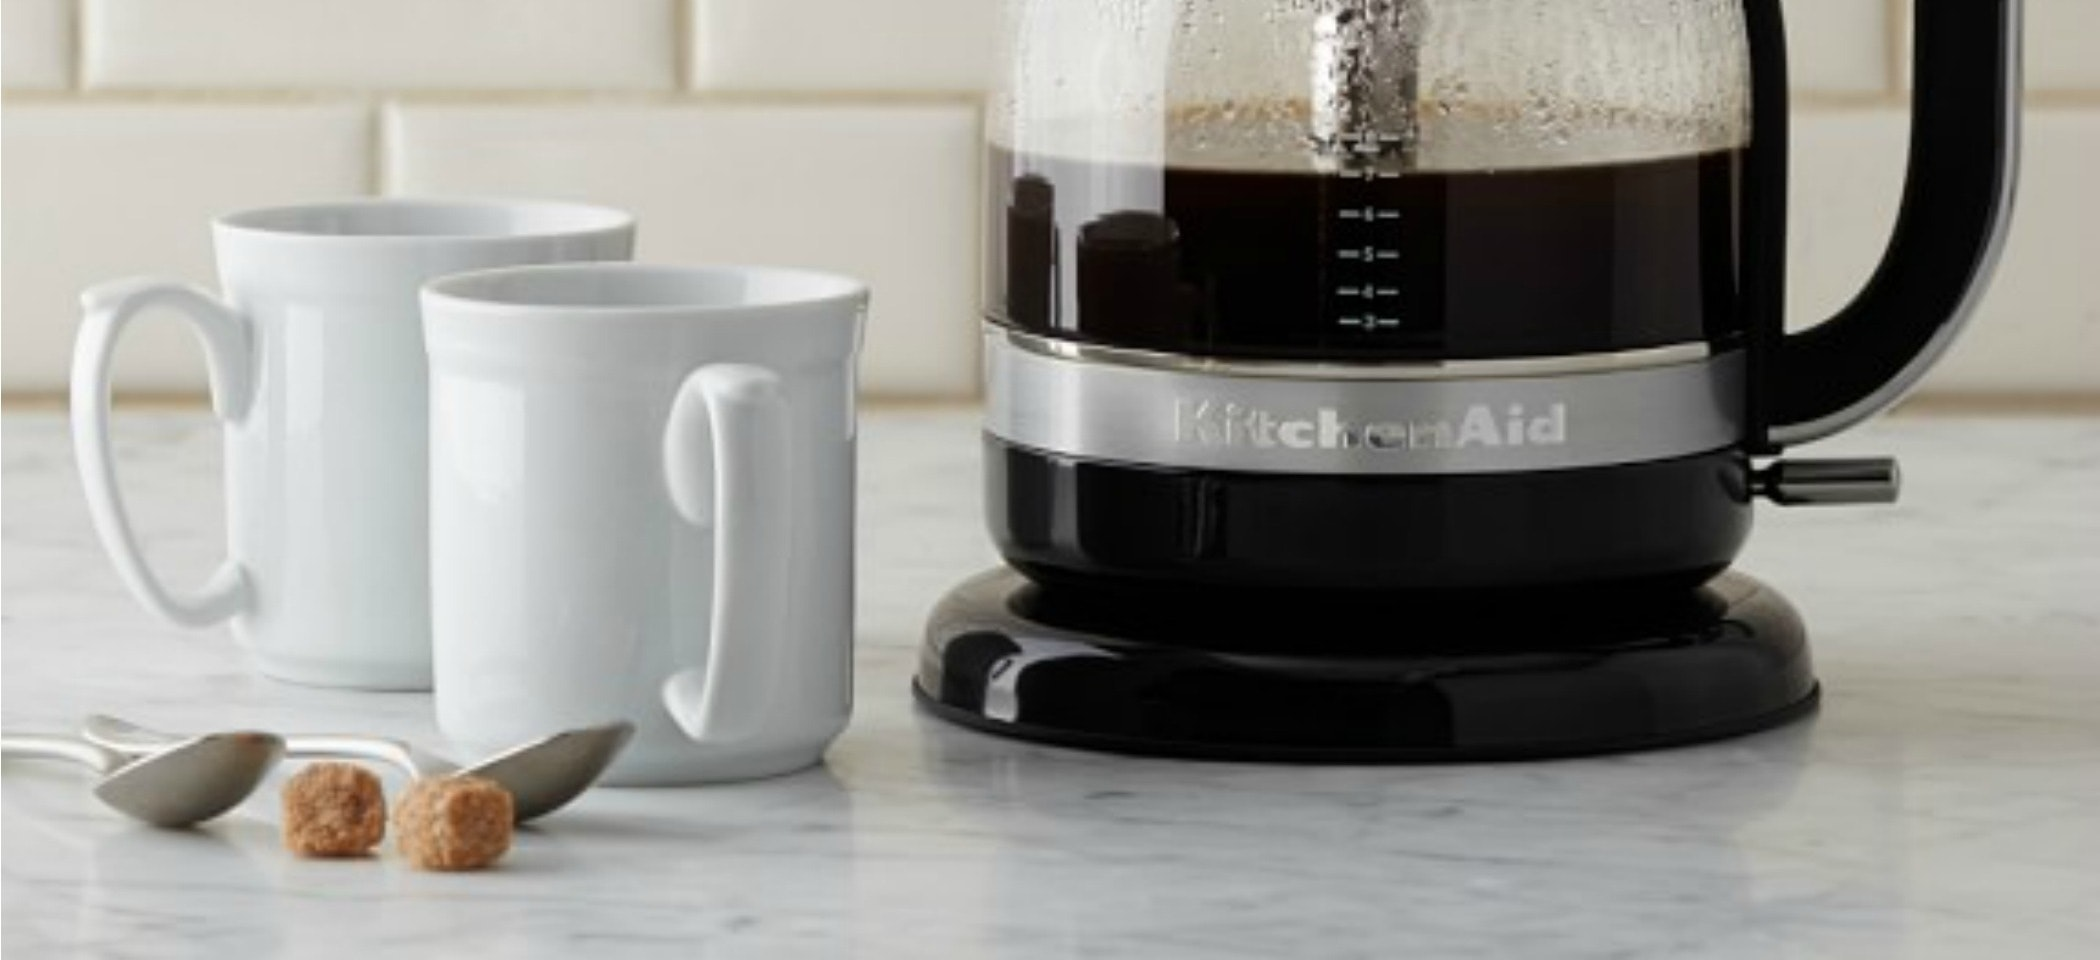 12 Products for the Perfect Cup of Coffee